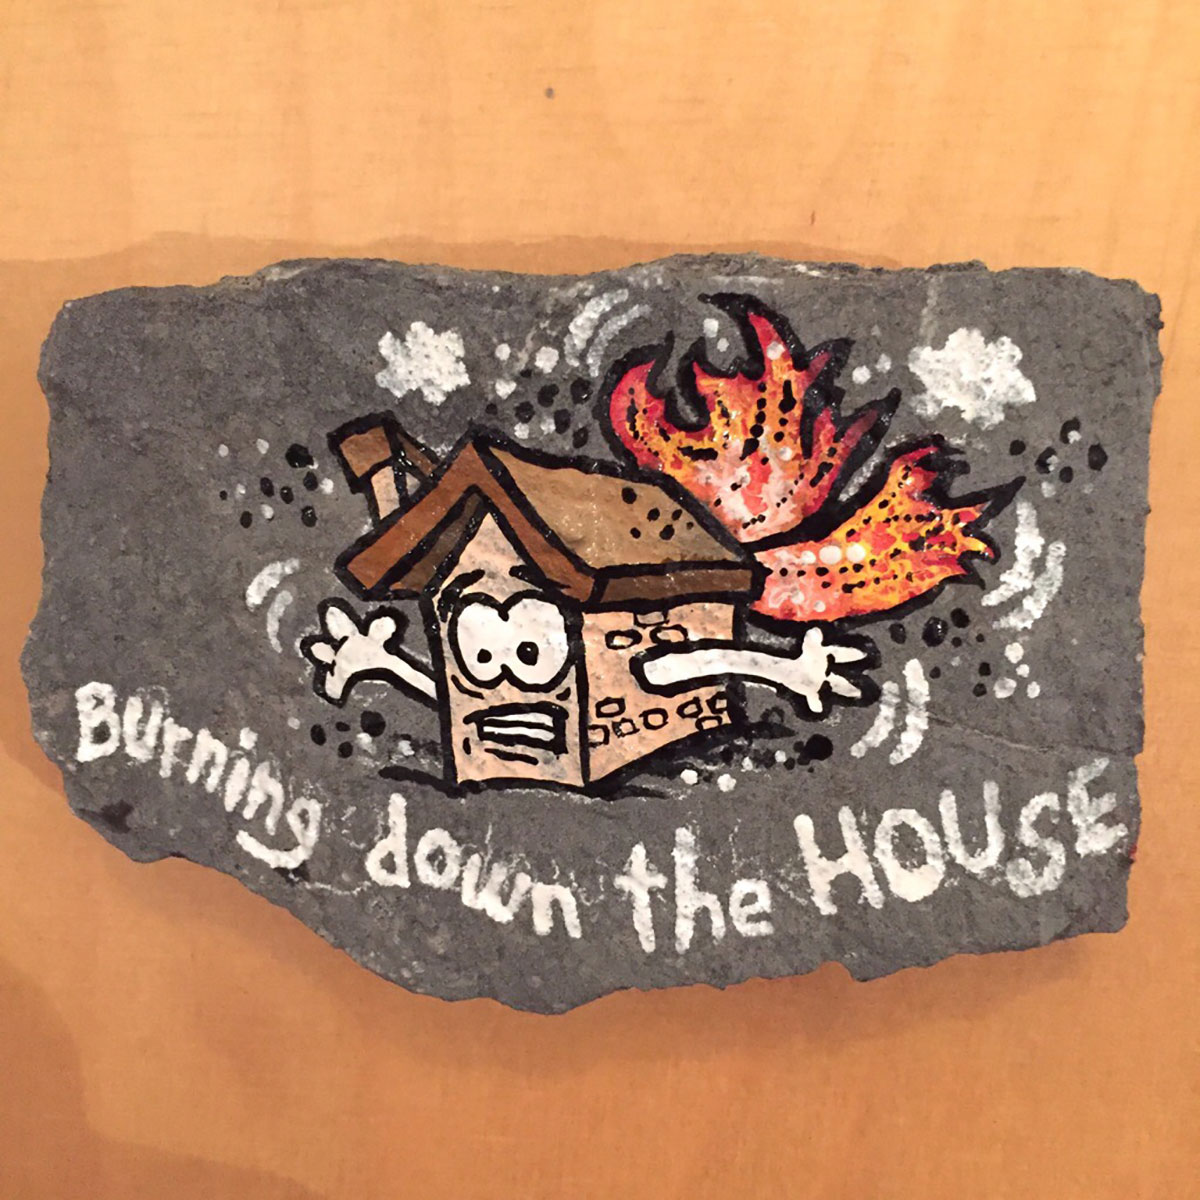 "Warstein, Hillenberg, Route "" Burning Down The House"", 8+/9-"